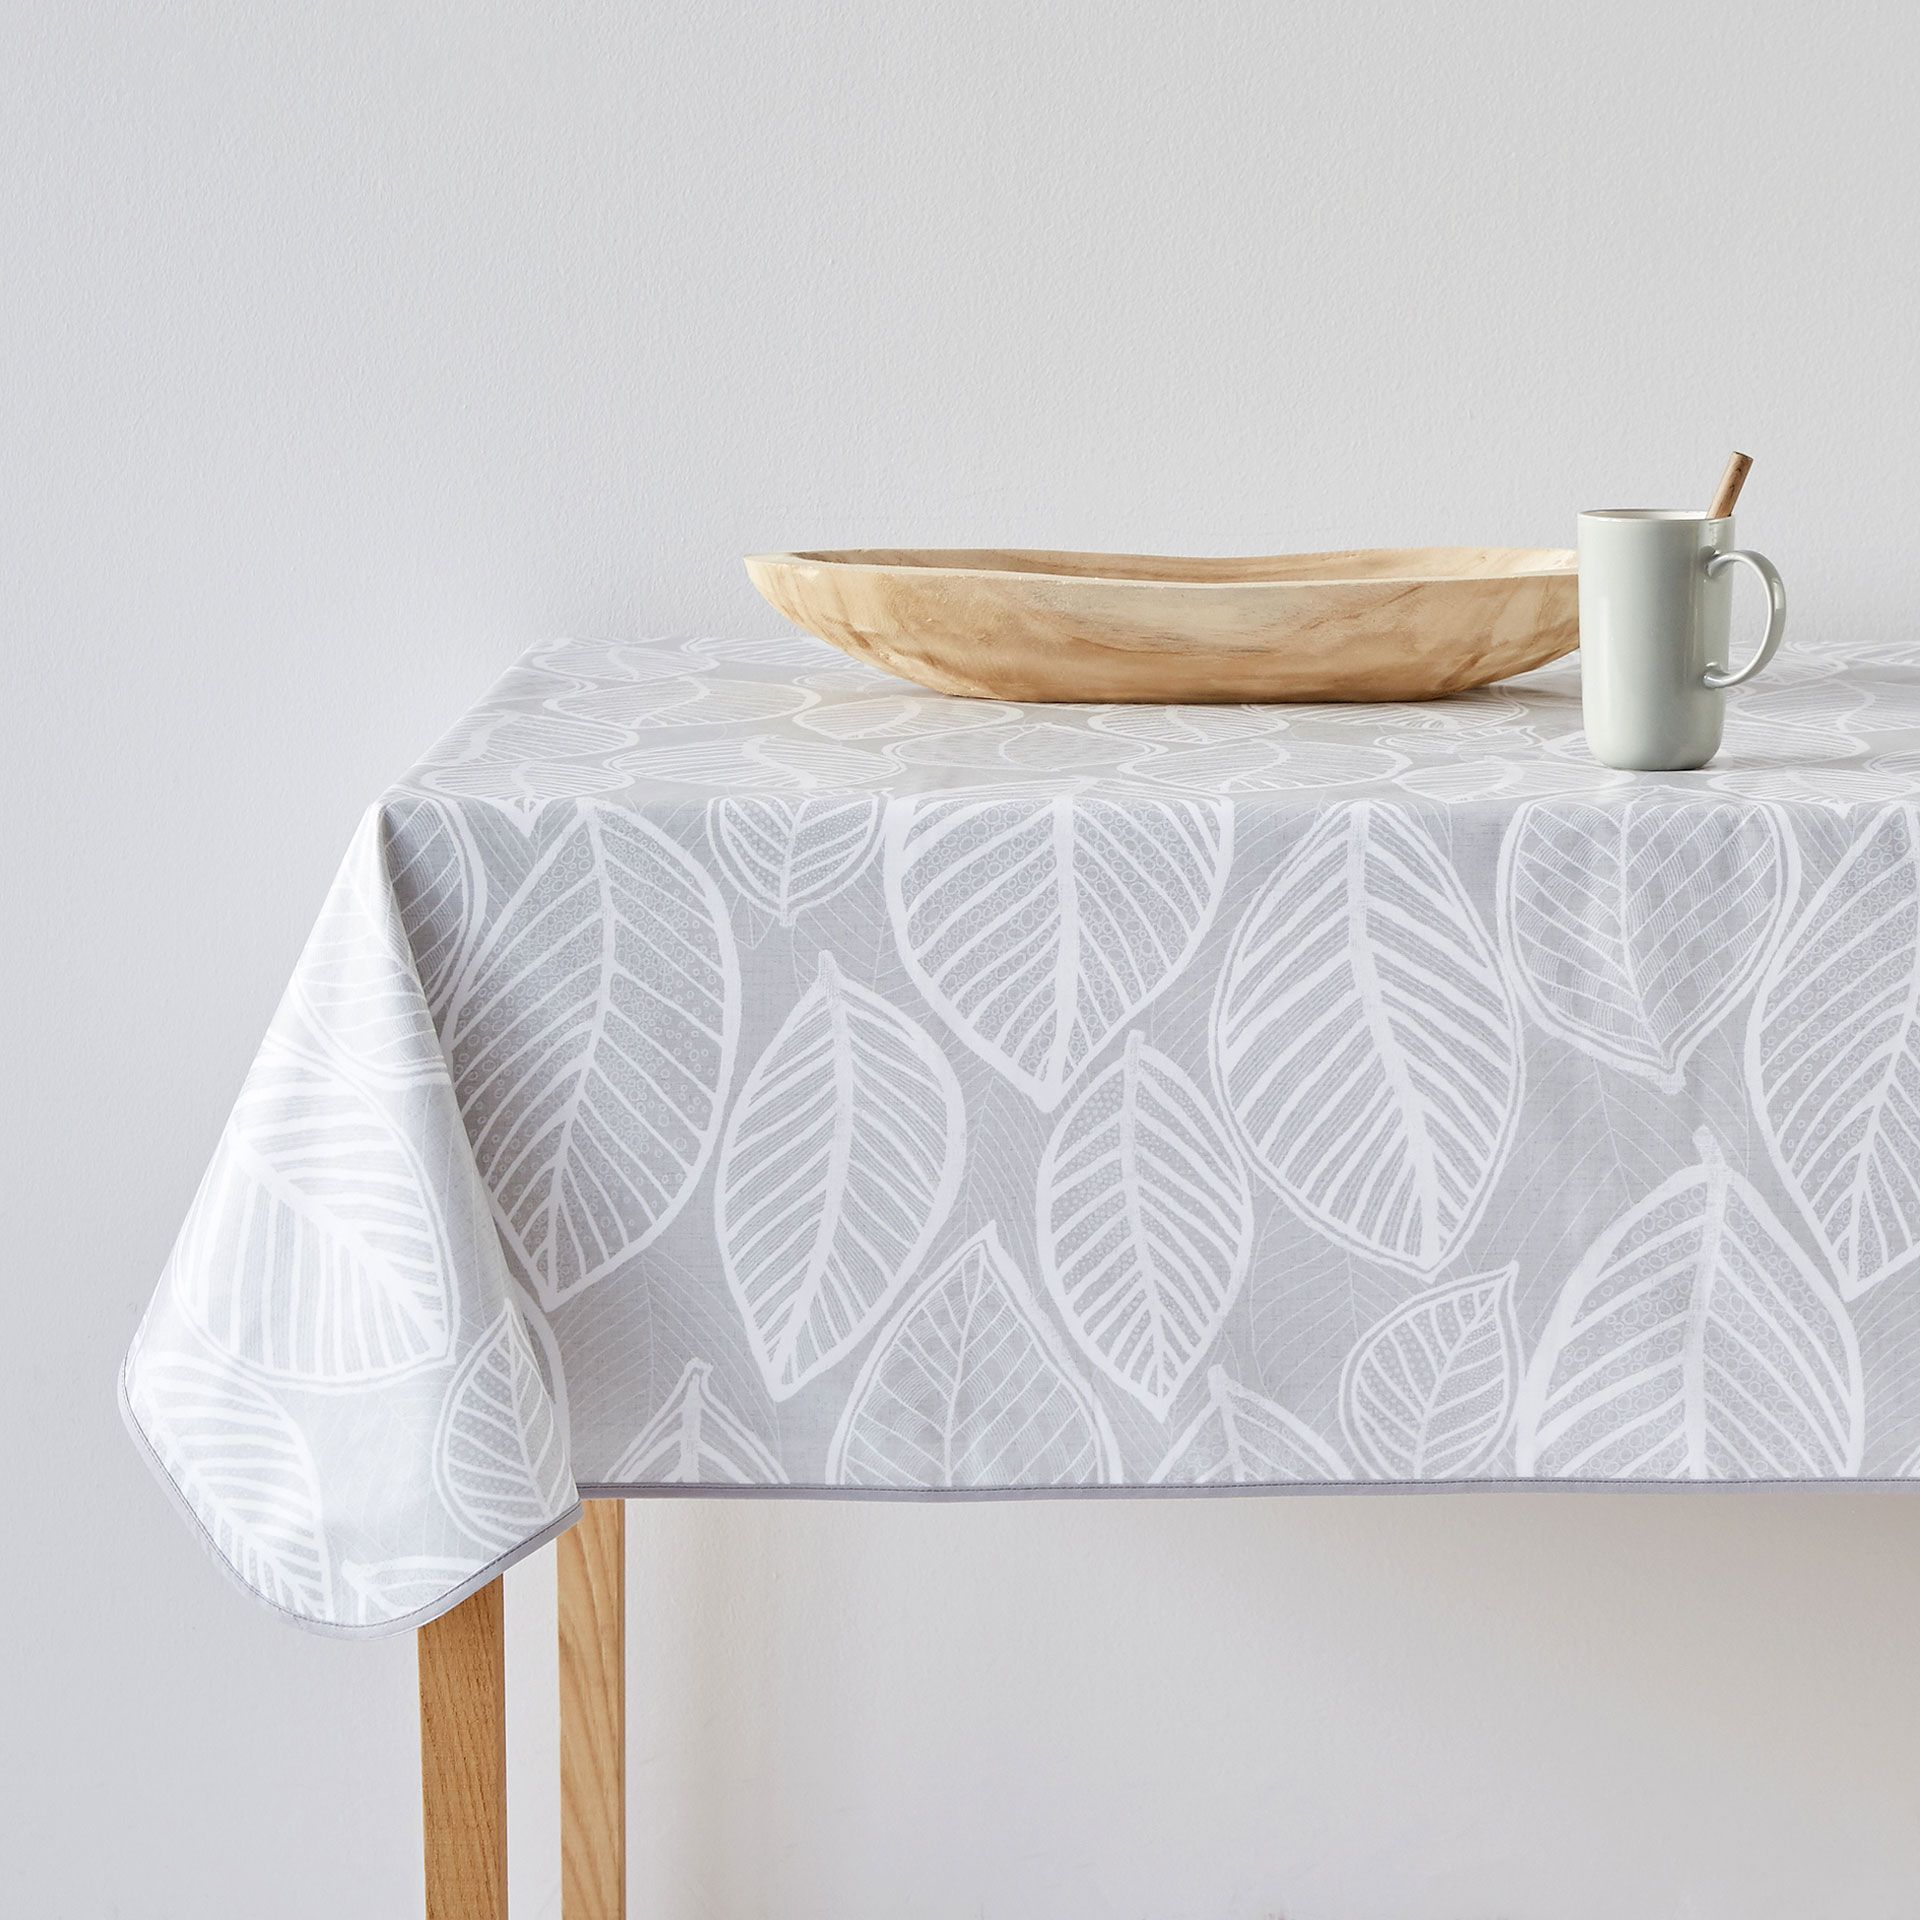 Image 1 Of The Product Grey Leaves Laminated Tablecloth